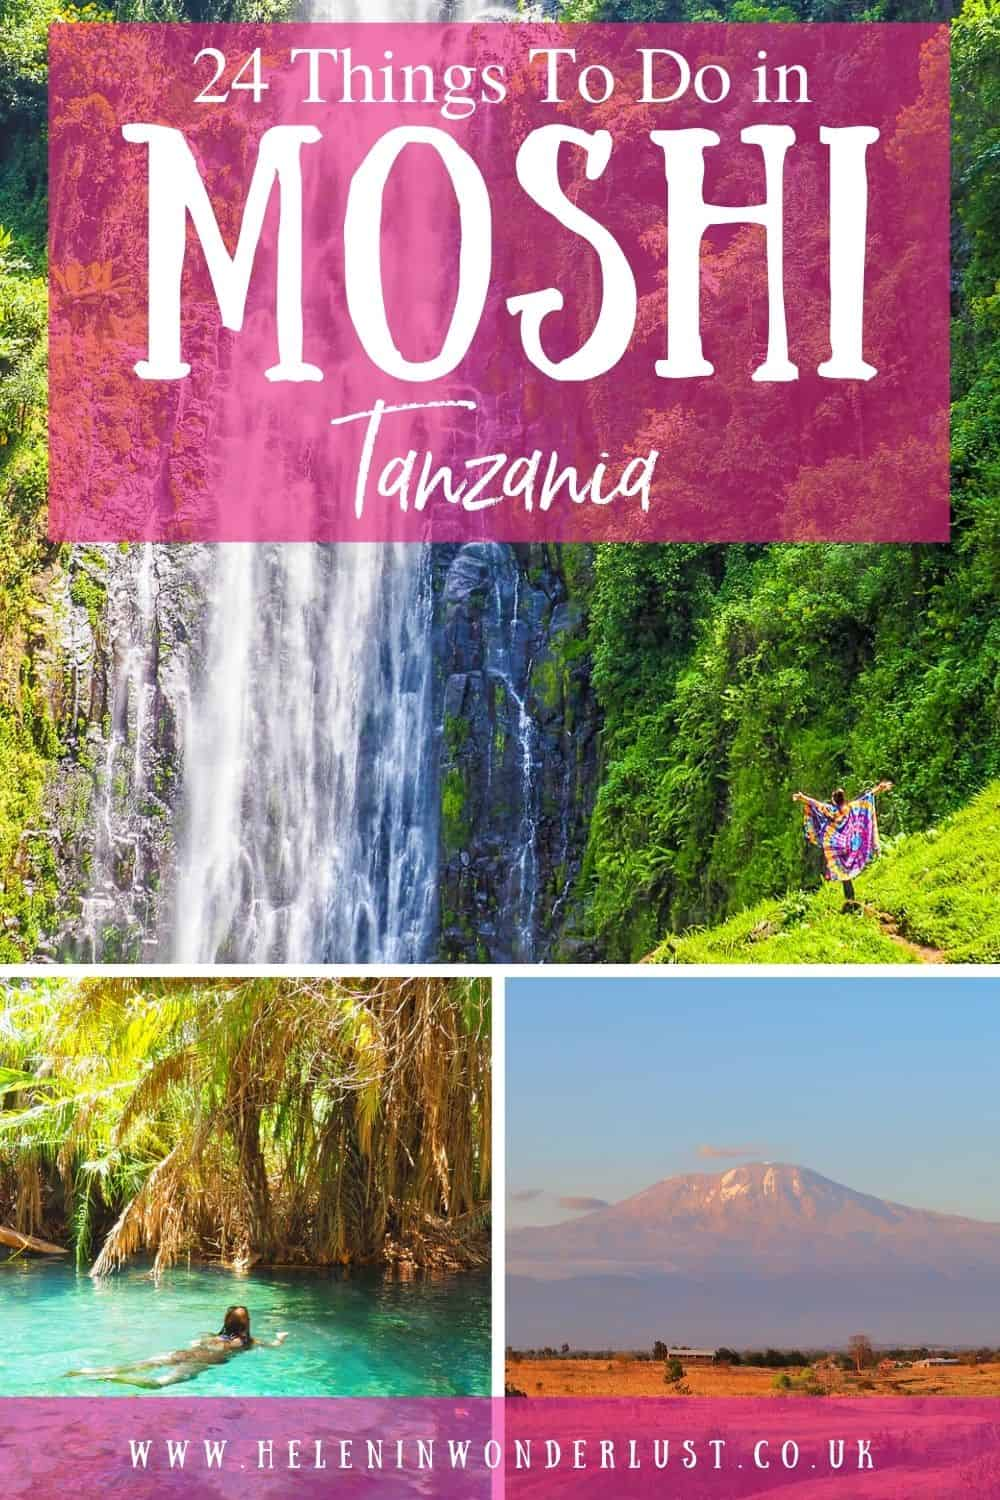 Looking for things to do in Moshi? Here are my favourite things to do in this great city in Northern Tanzania!